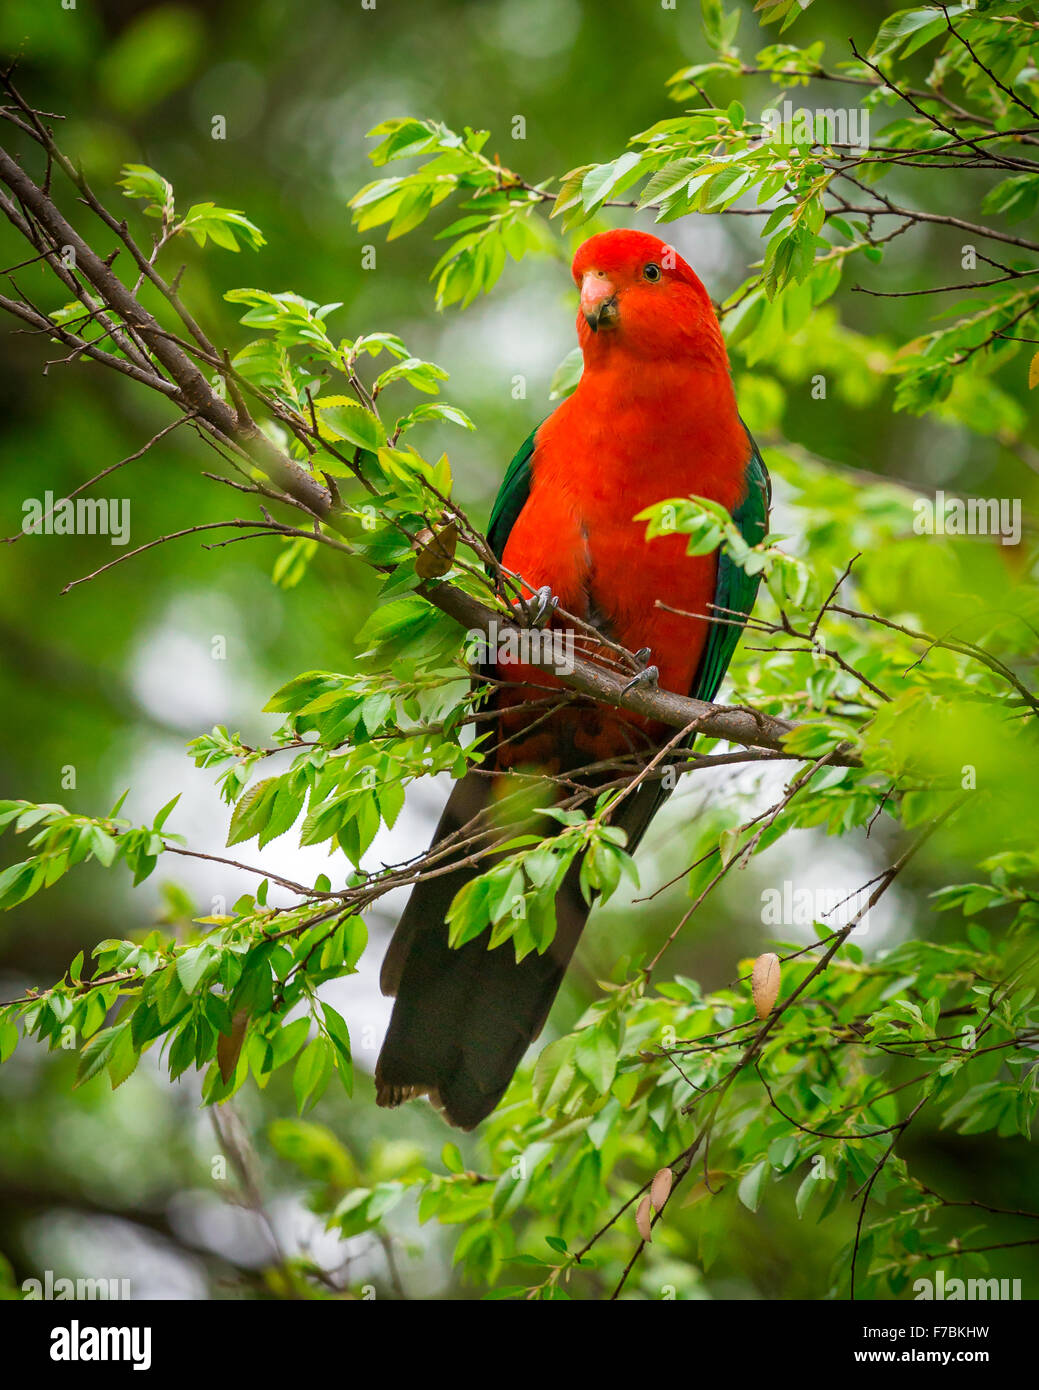 a male king parrot in a tree - Stock Image